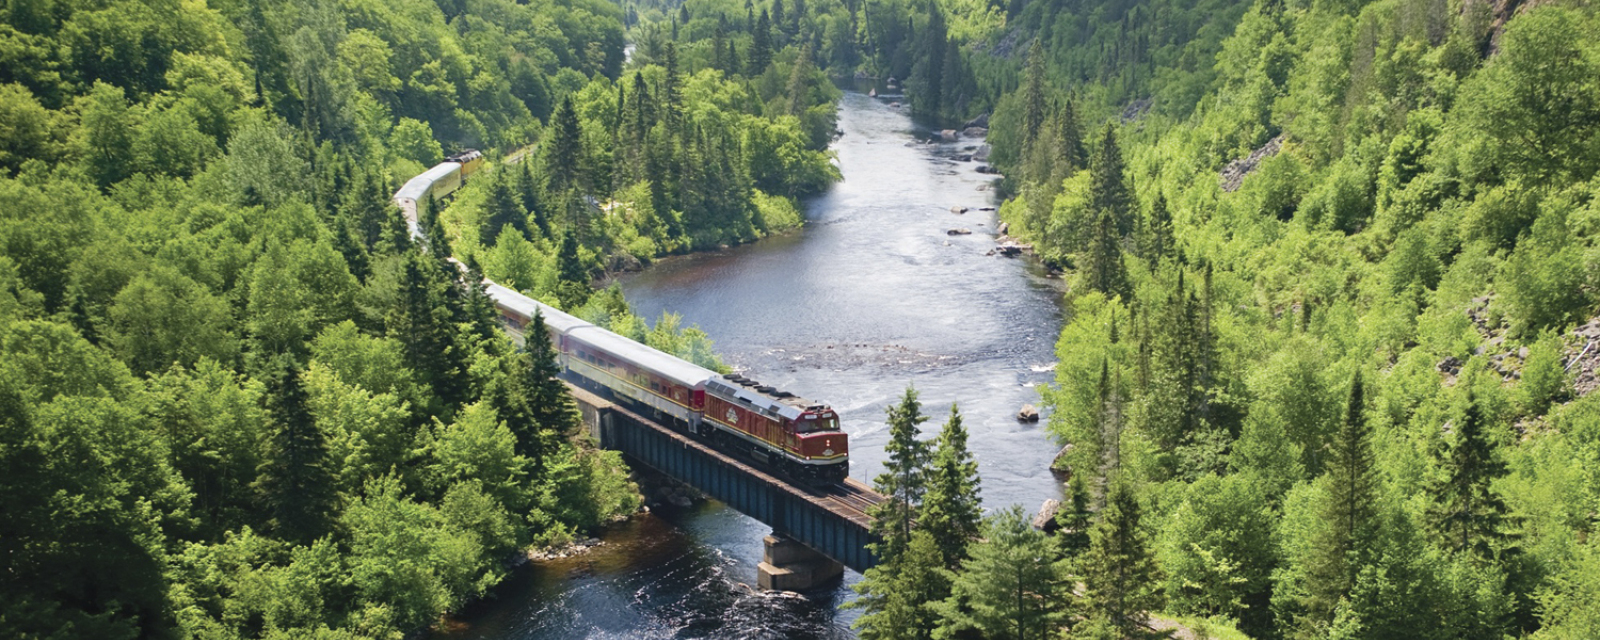 Agawa Canyon via Canyon Tour Train